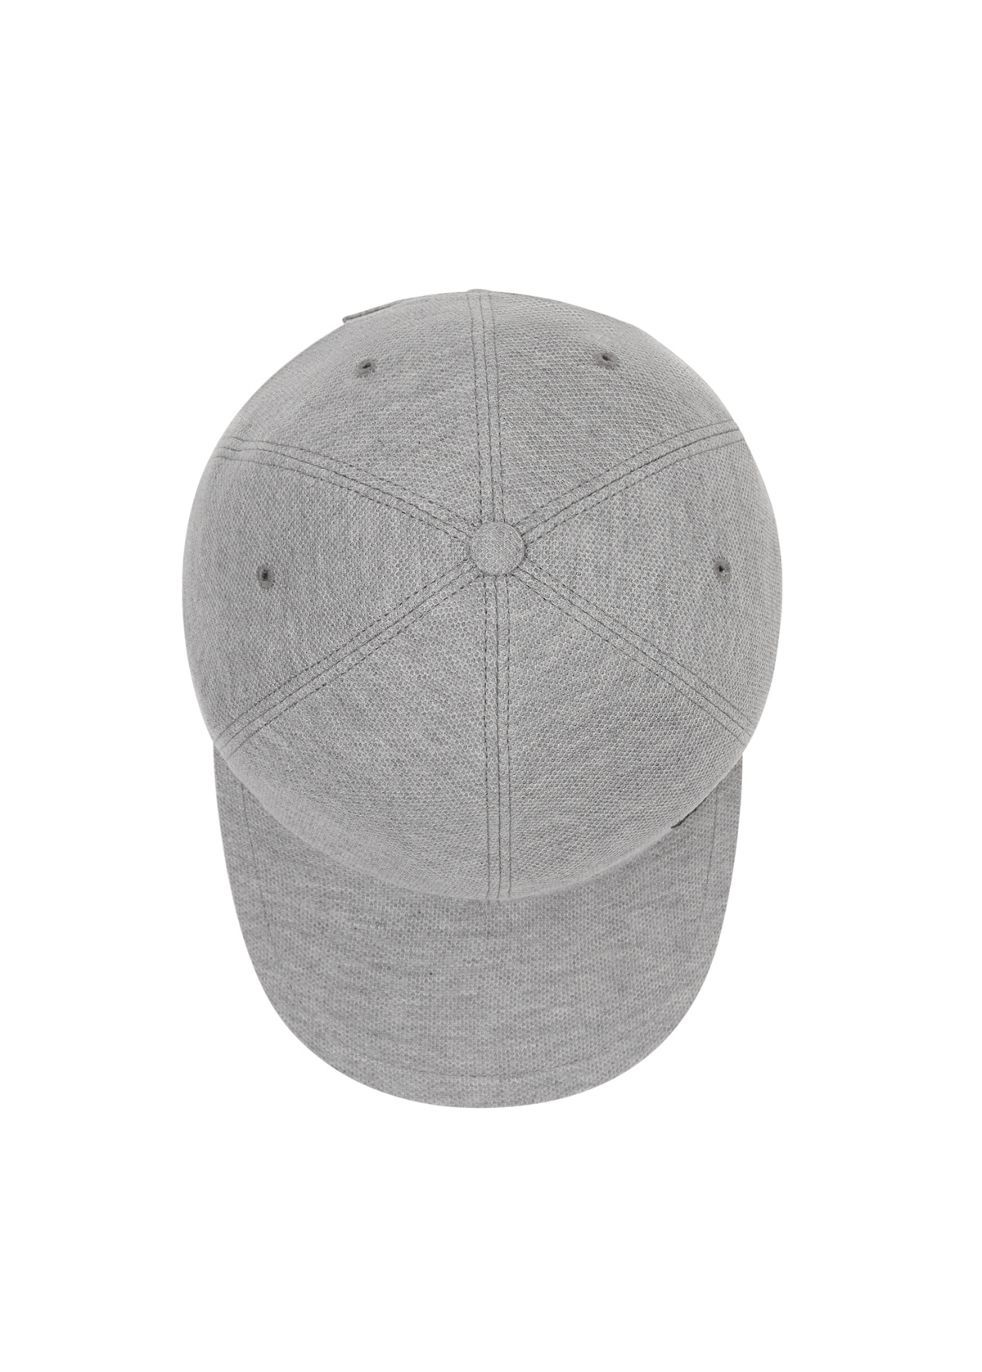 3836899d Burberry Men's Hats - Harvey Nichols